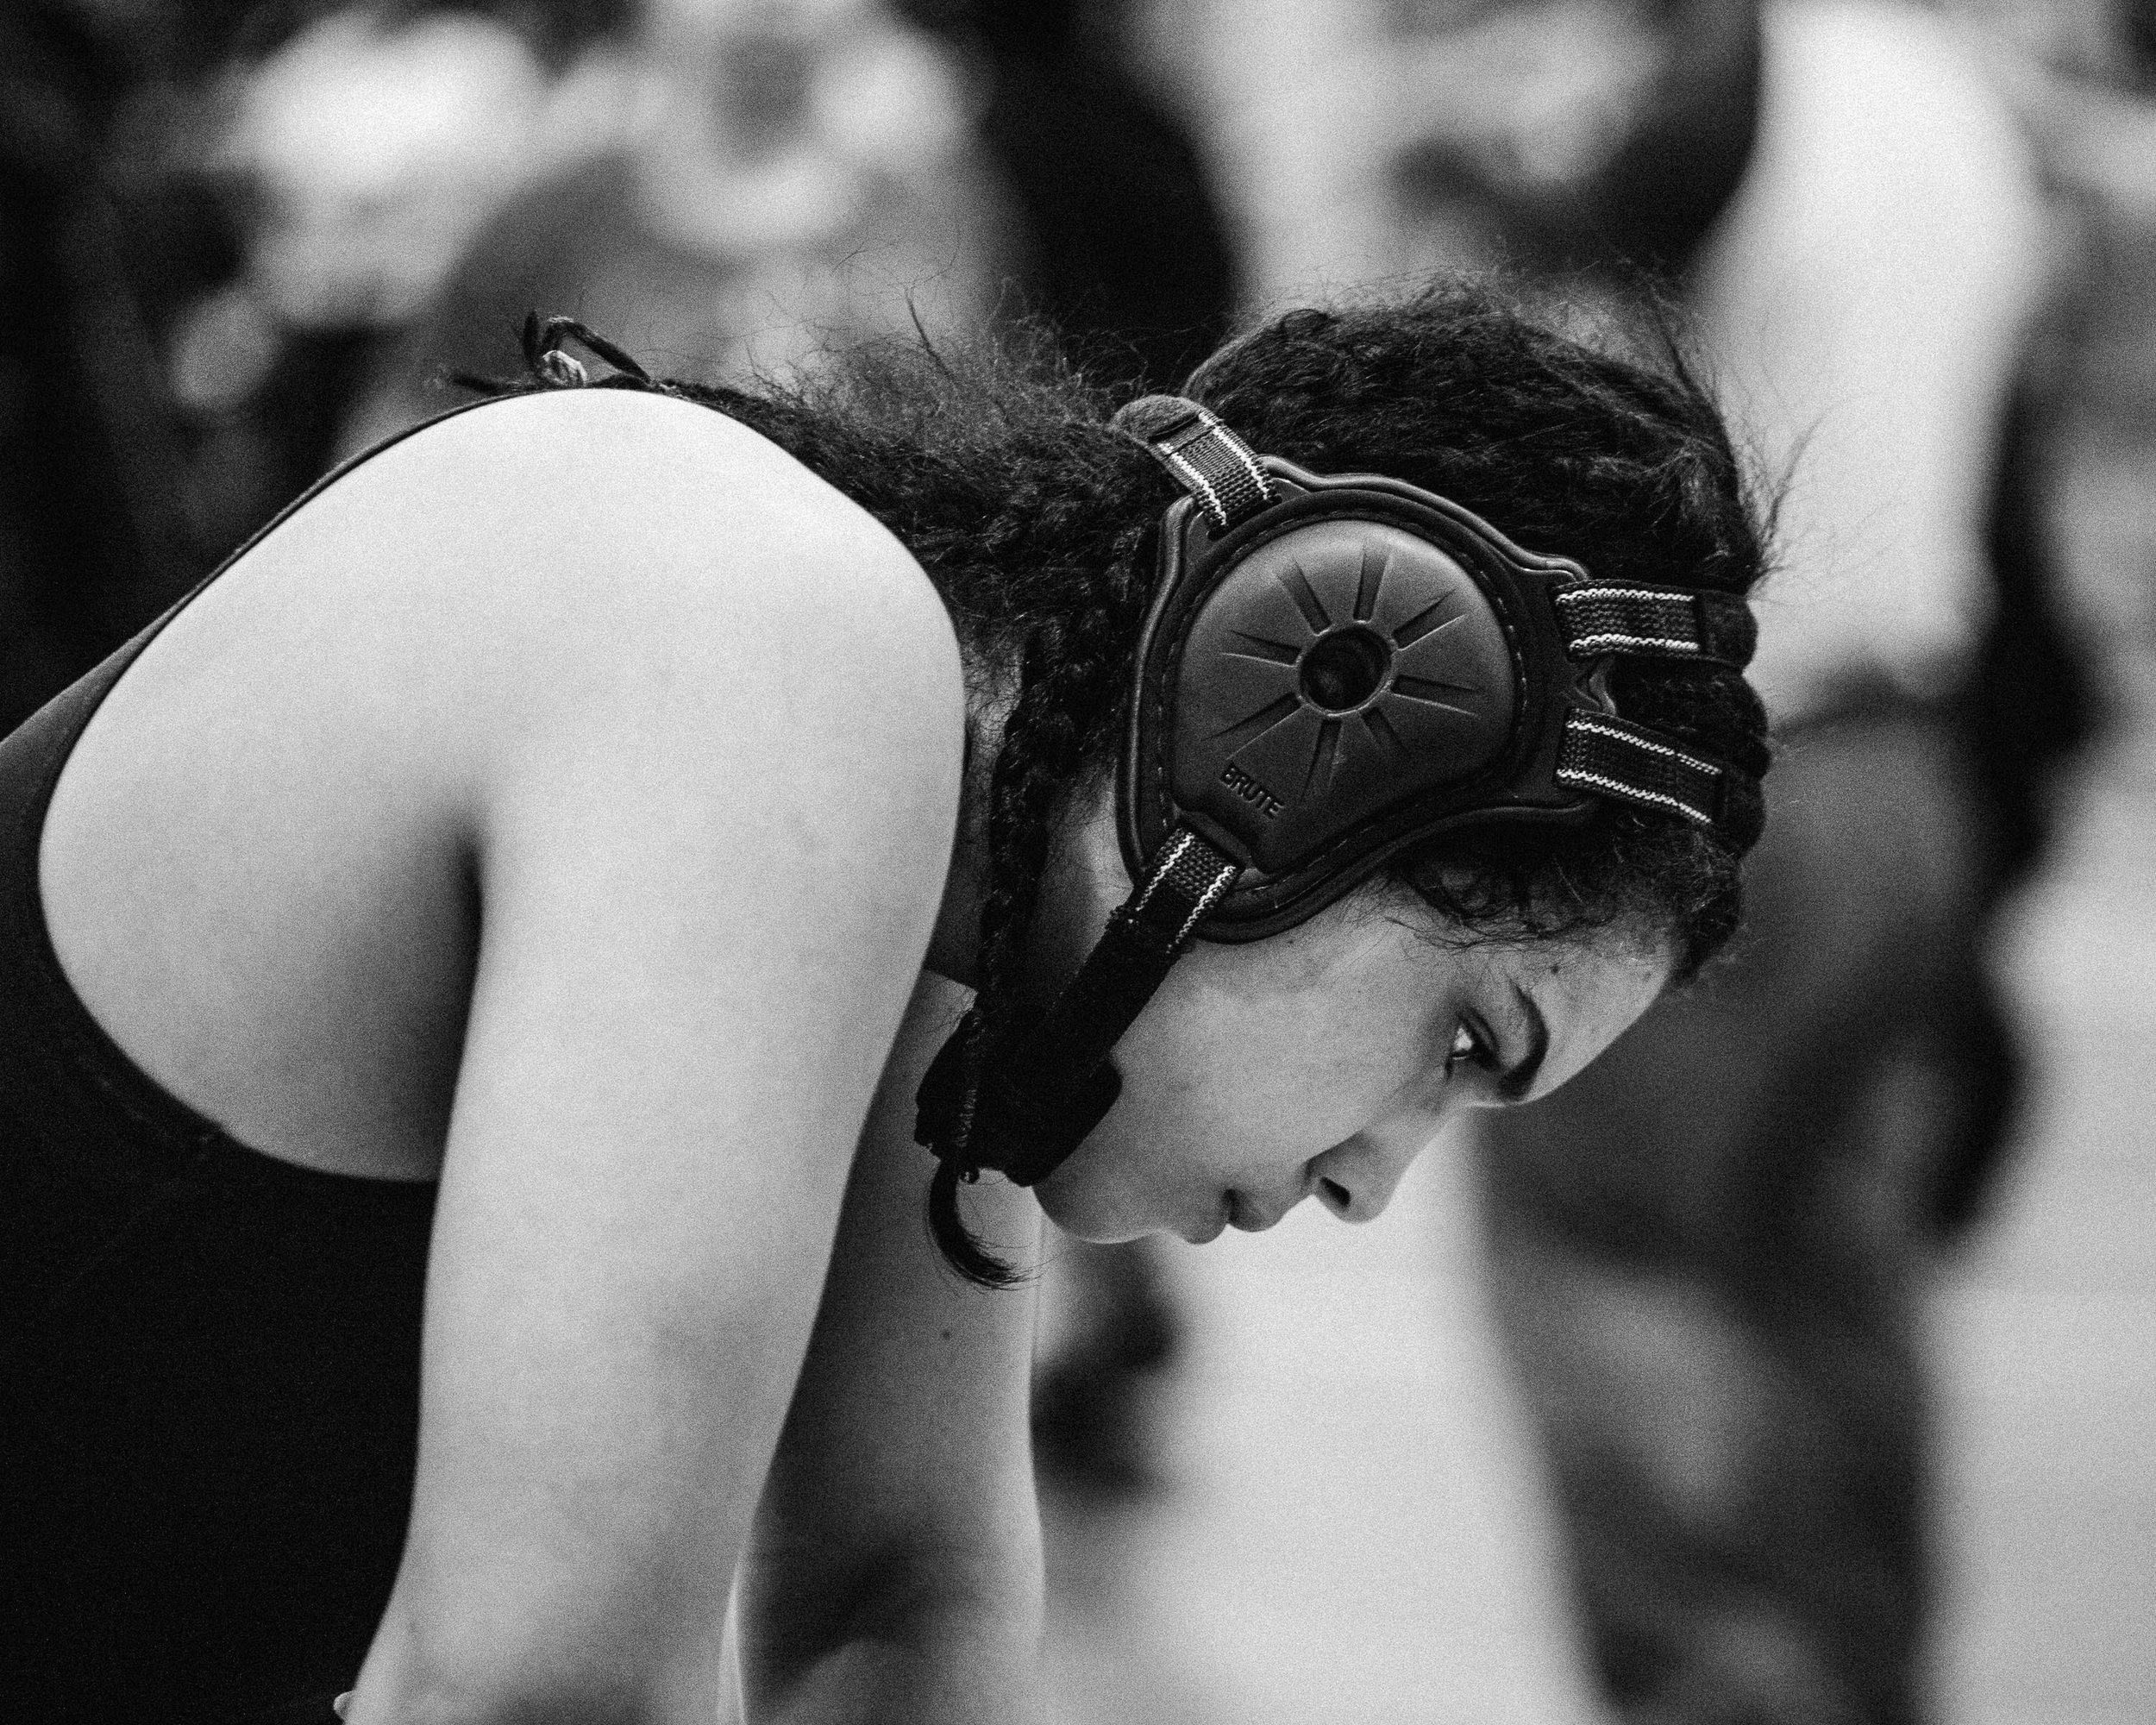 Andreina Rodriguez preparing for a match at the Francis Lewis Tournament, April 2016. By Laurel Golio.